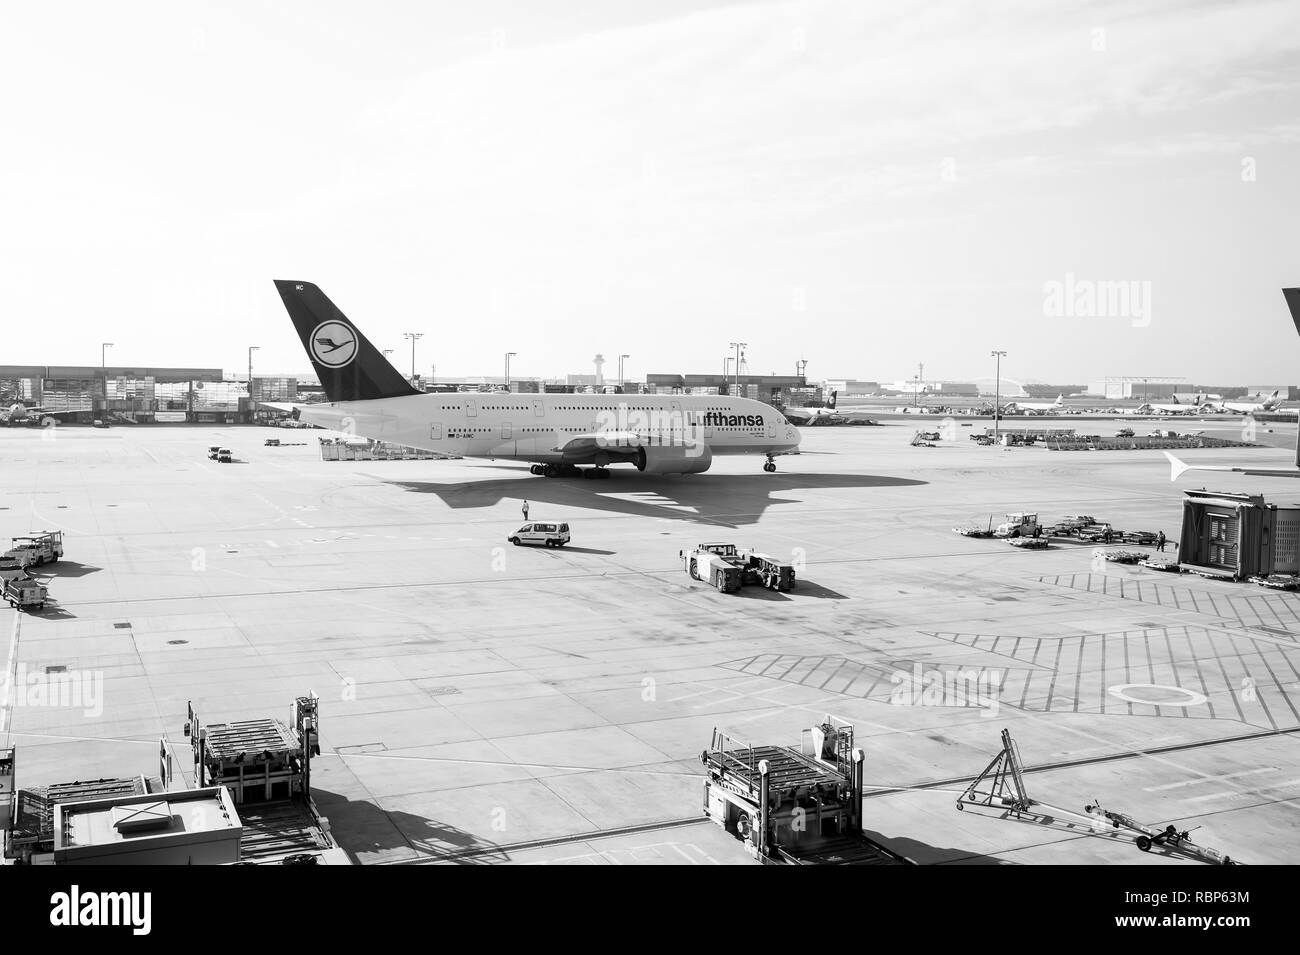 Frankfurt am Main, Germany - October 11, 2015: aviation and transport. Lufthansa airbus, jet airliner, aircraft or large passenger plane in airport. Travelling by air. Vacation, wanderlust, journey - Stock Image